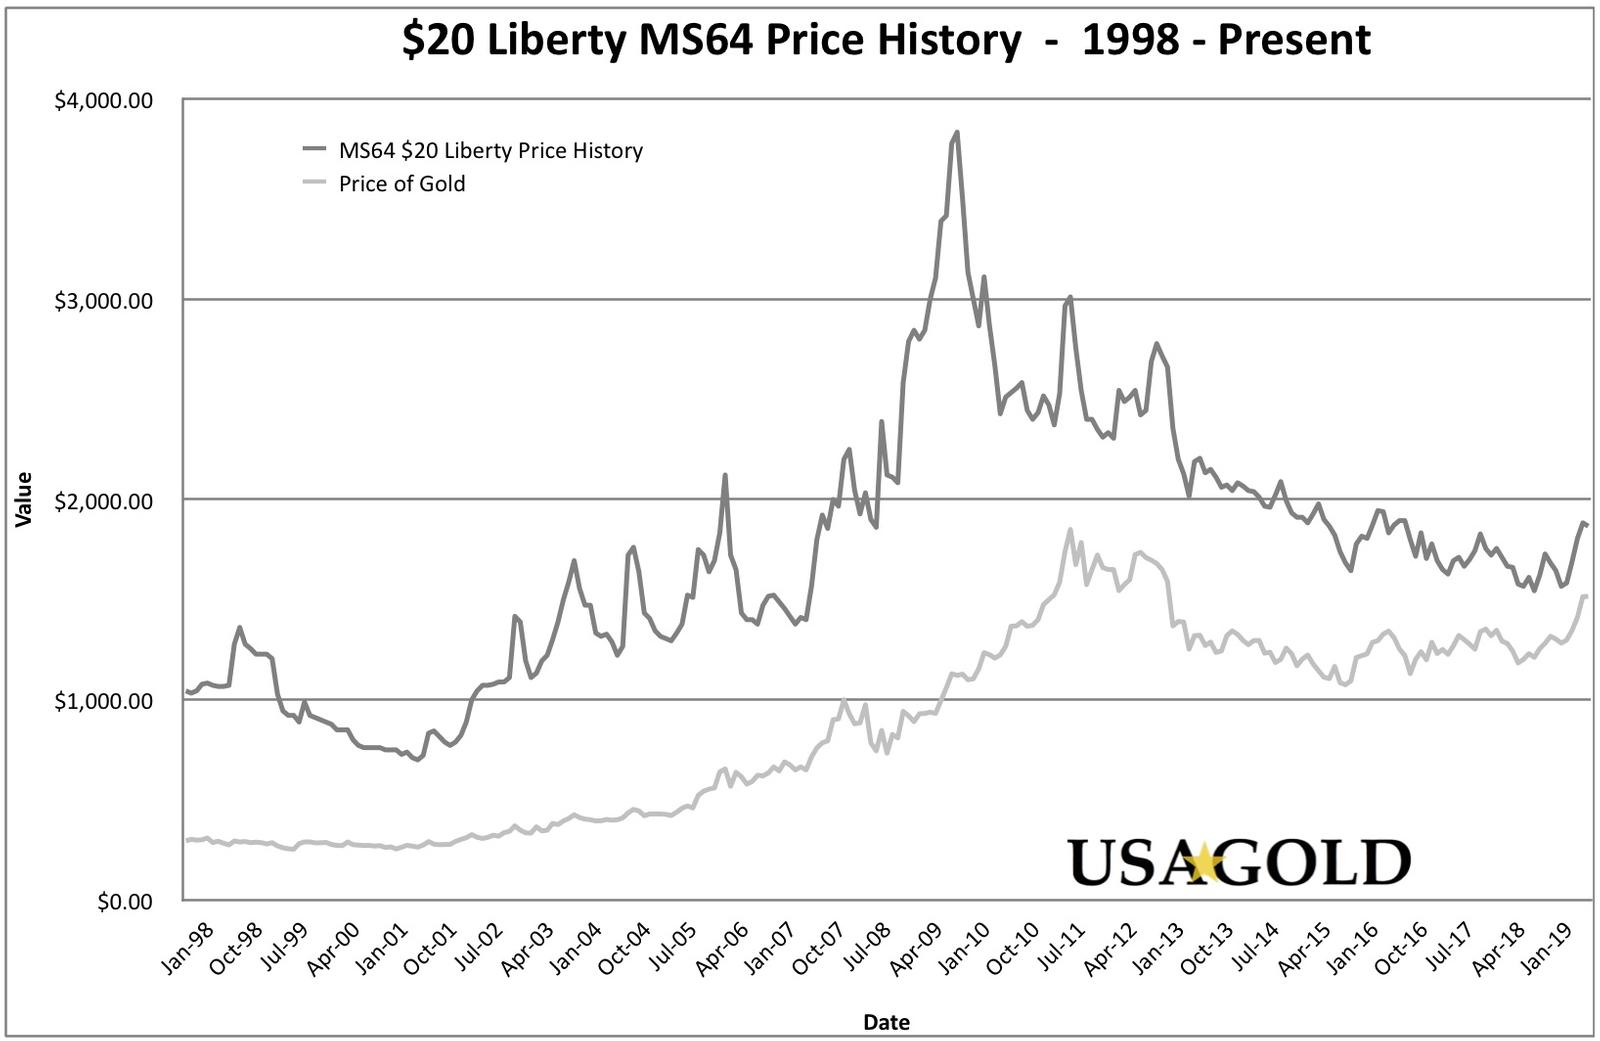 $20 Liberty MS64 Price History Graph (20 Year), shown with the price of spot gold for the same period.